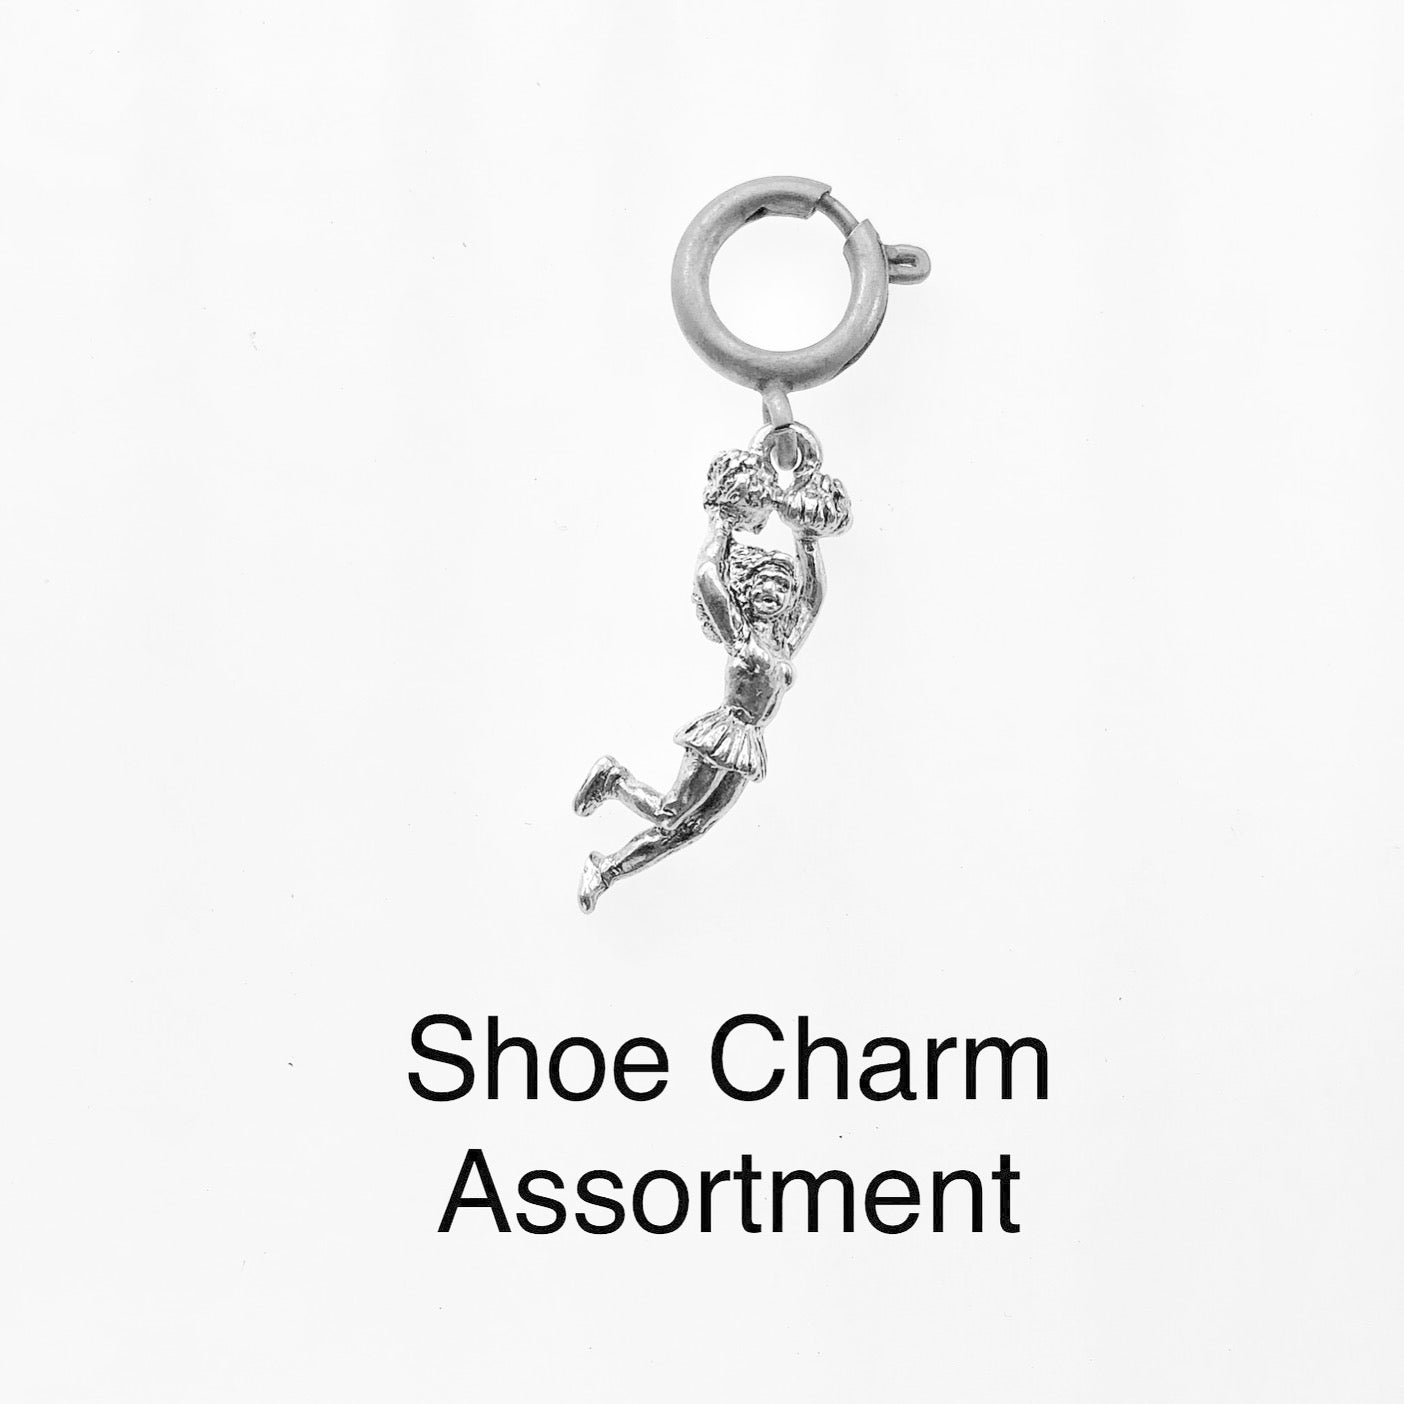 Shoe Charm Assortment - $10.00 Total Cost for Charm and Closure (This is a made to order assembly item)